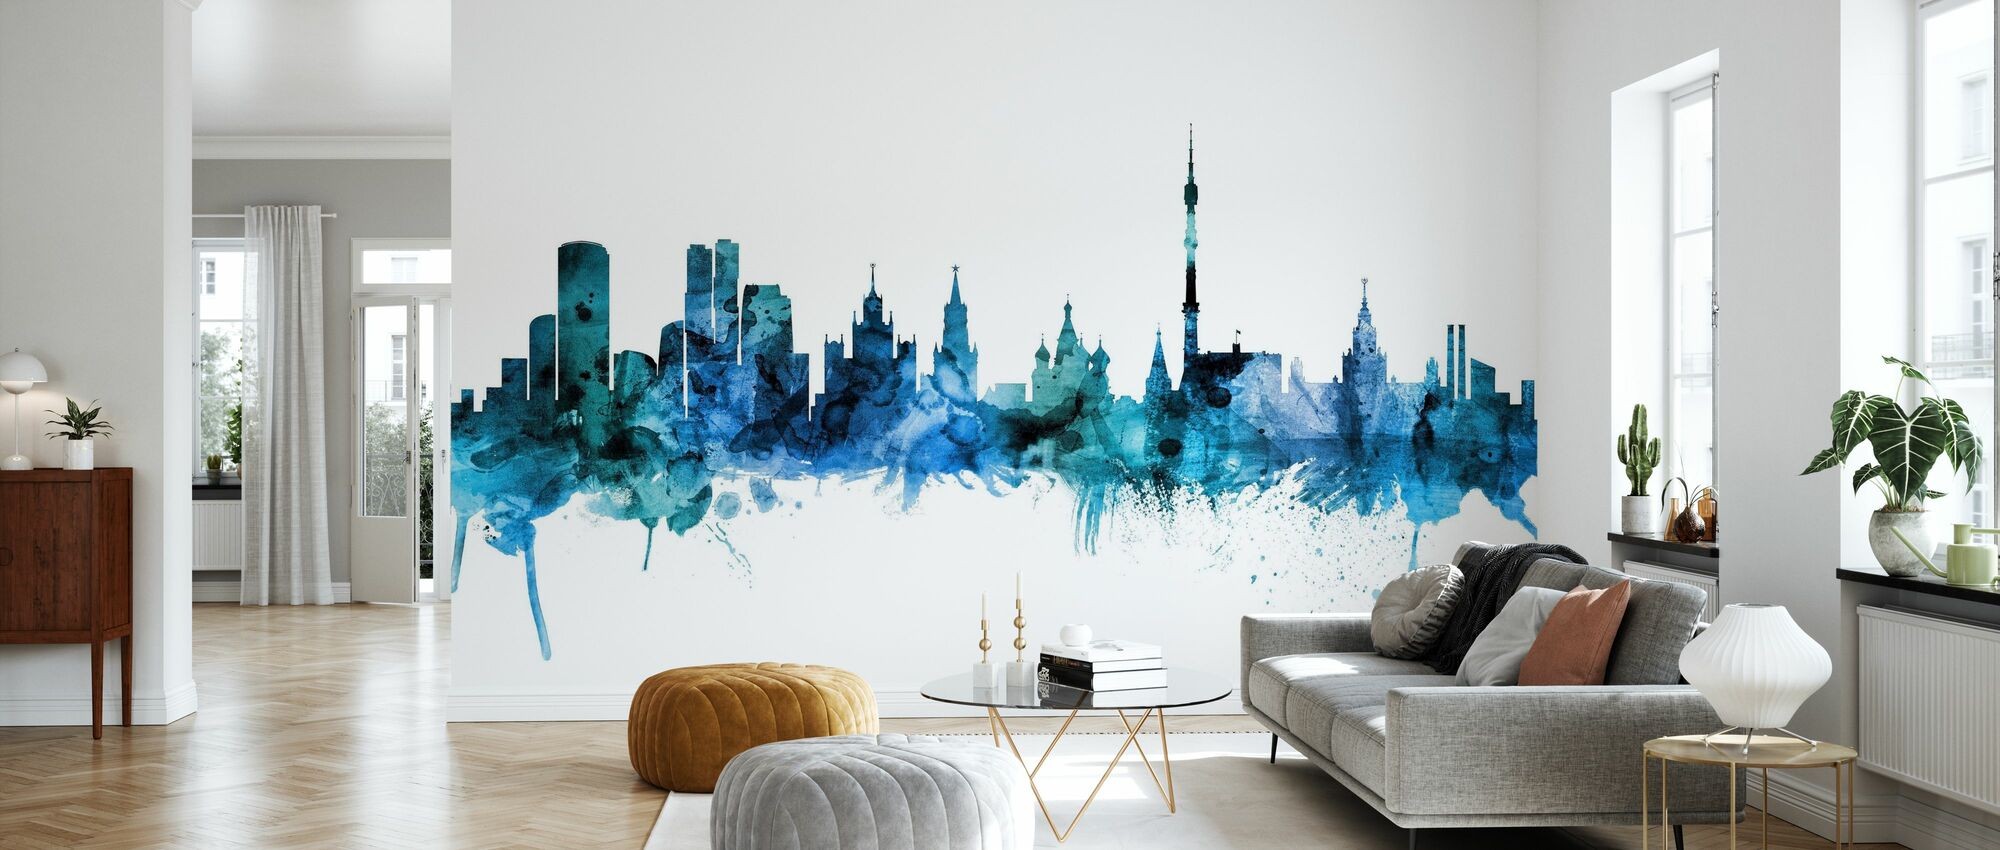 Moscow Russia Skyline - Wallpaper - Living Room